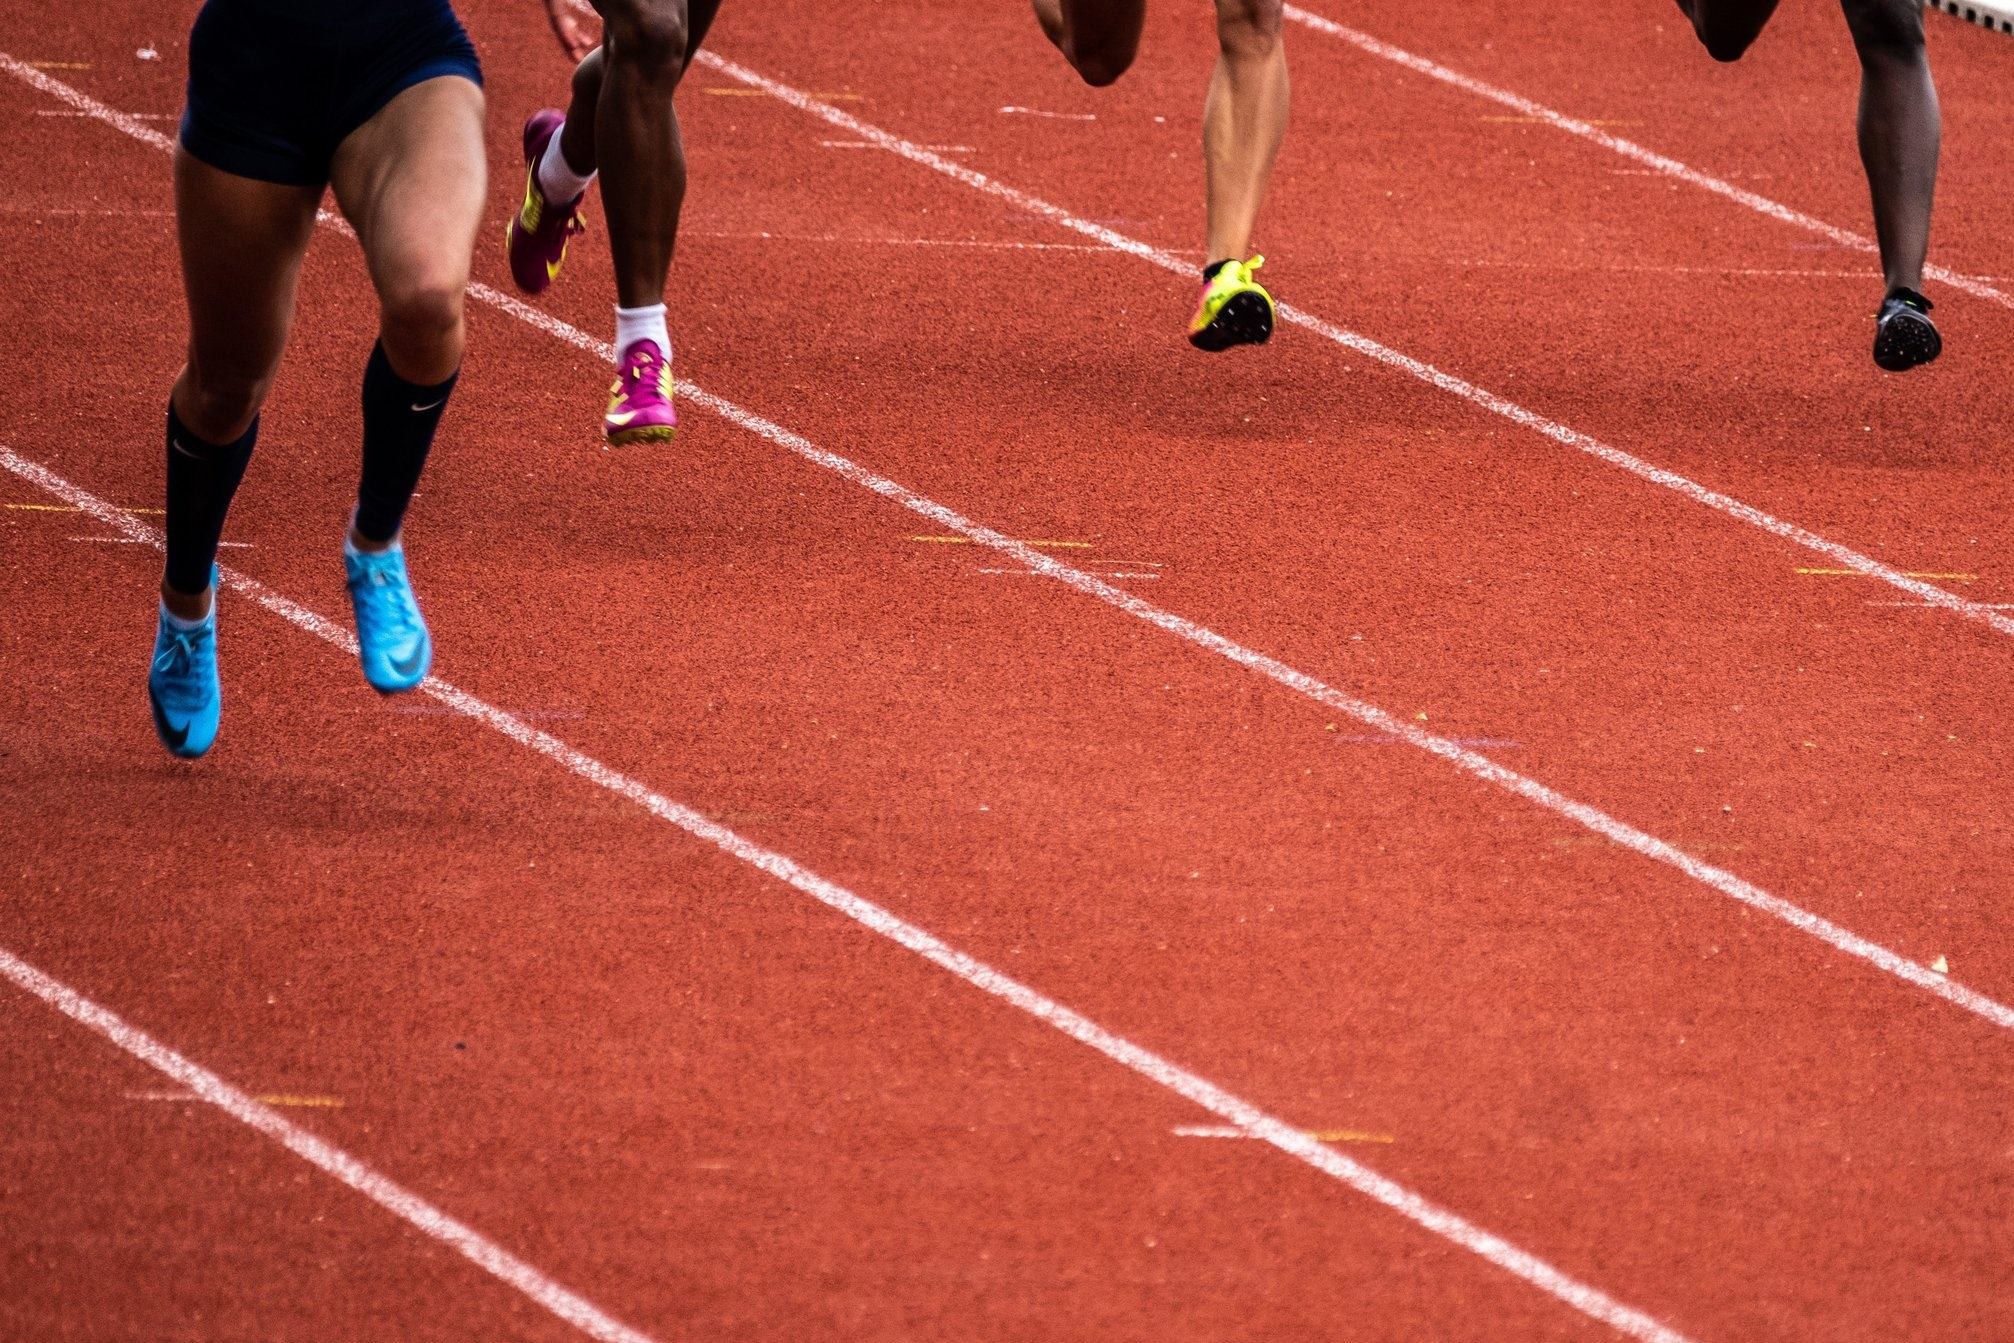 Running faster means a higher running cadence